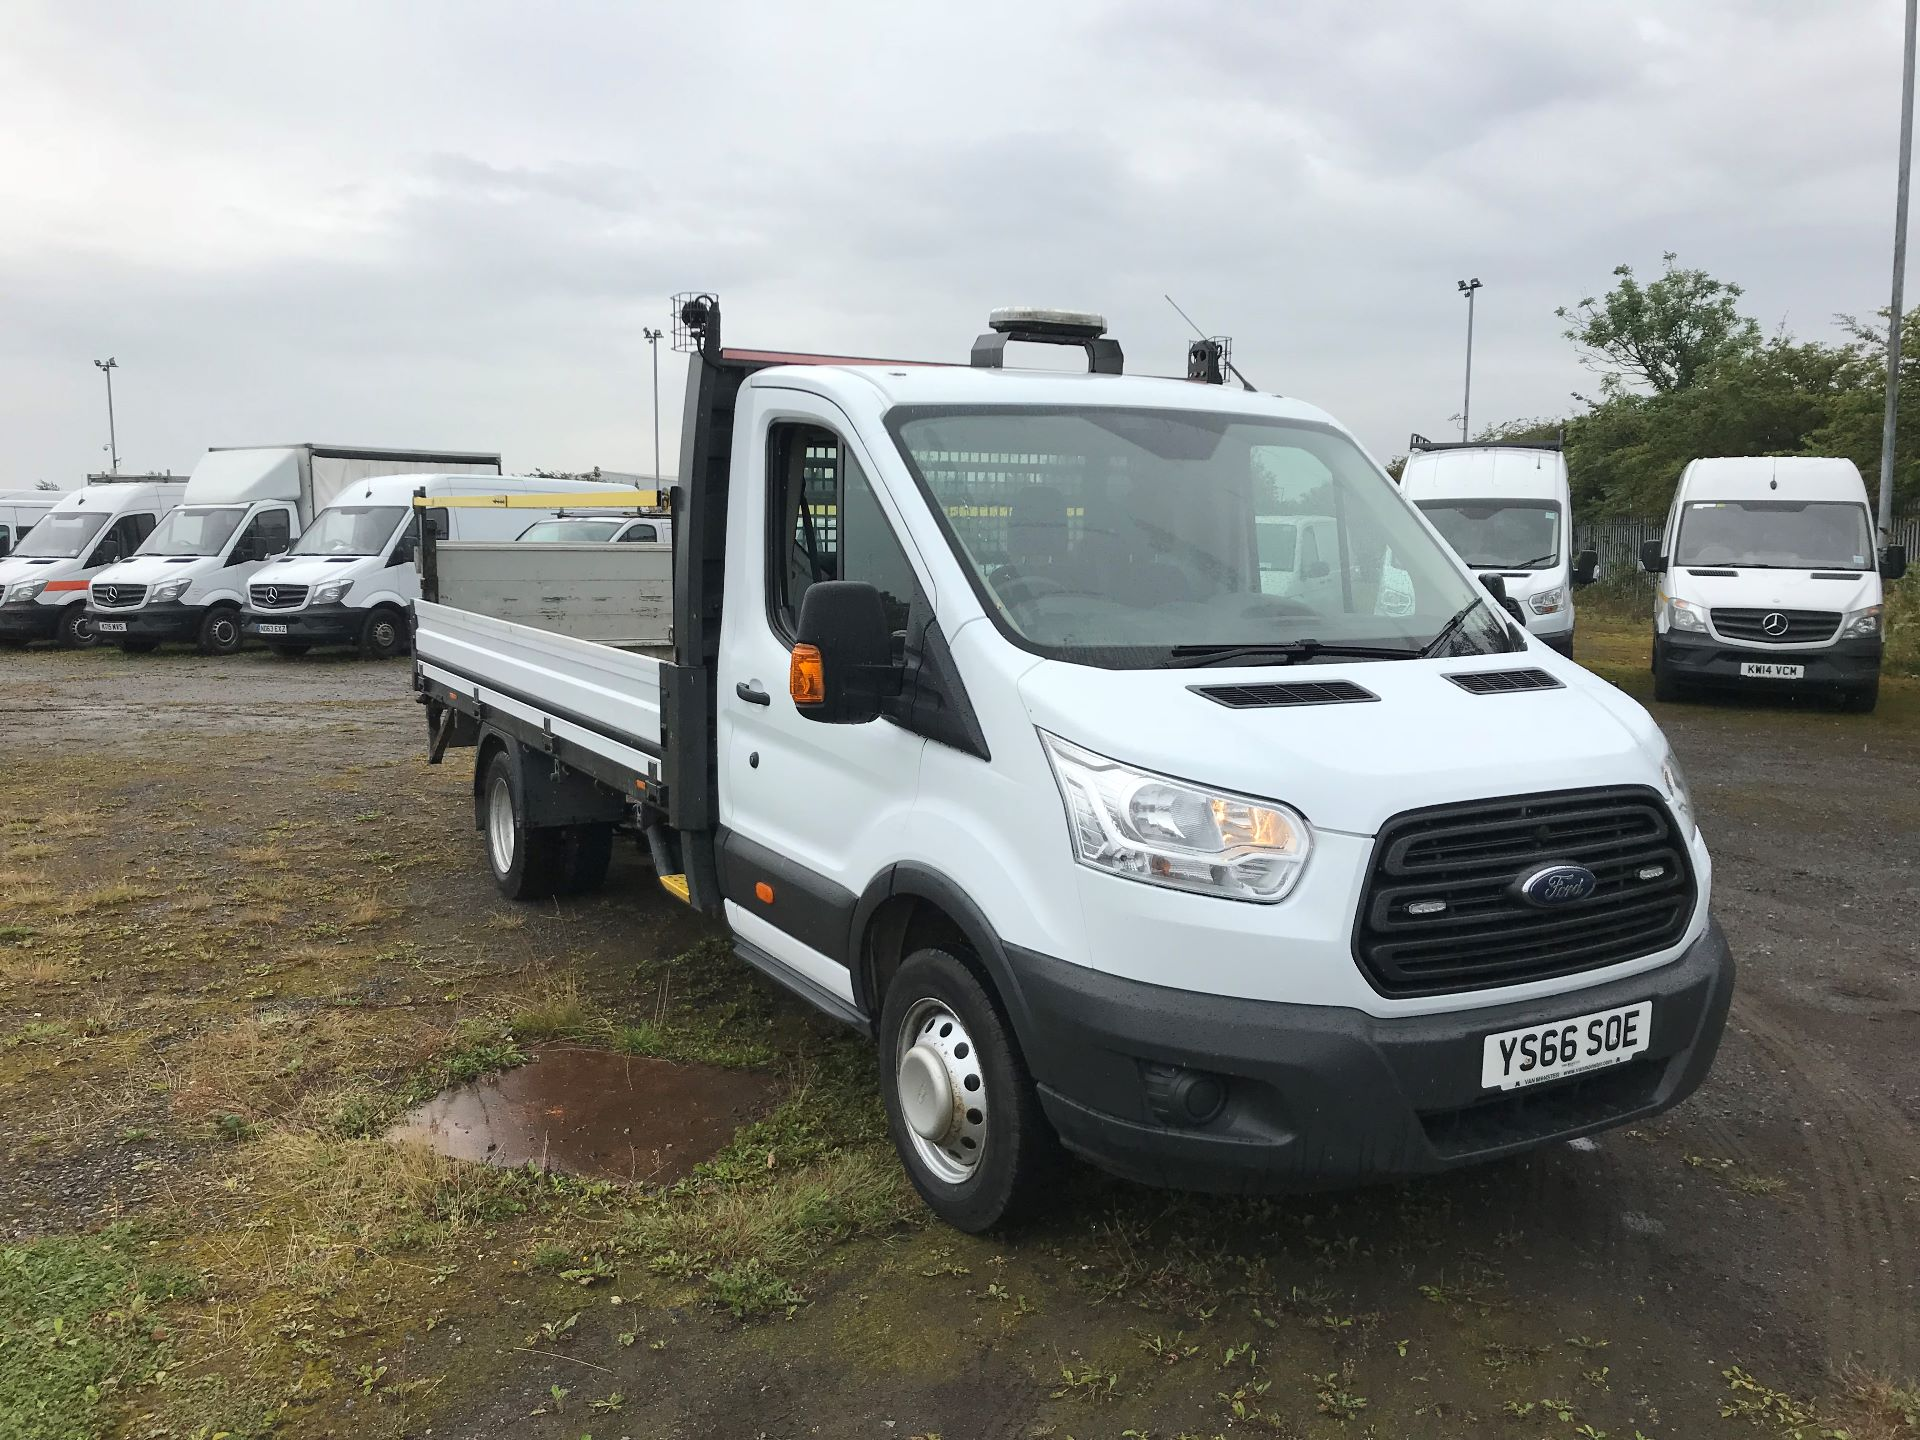 2016 Ford Transit 2.2 Tdci 125Ps Heavy Duty Chassis Cab *VALUE RANGE VEHICLE CONDITION REFLECTED IN PRICE*  (YS66SOE)